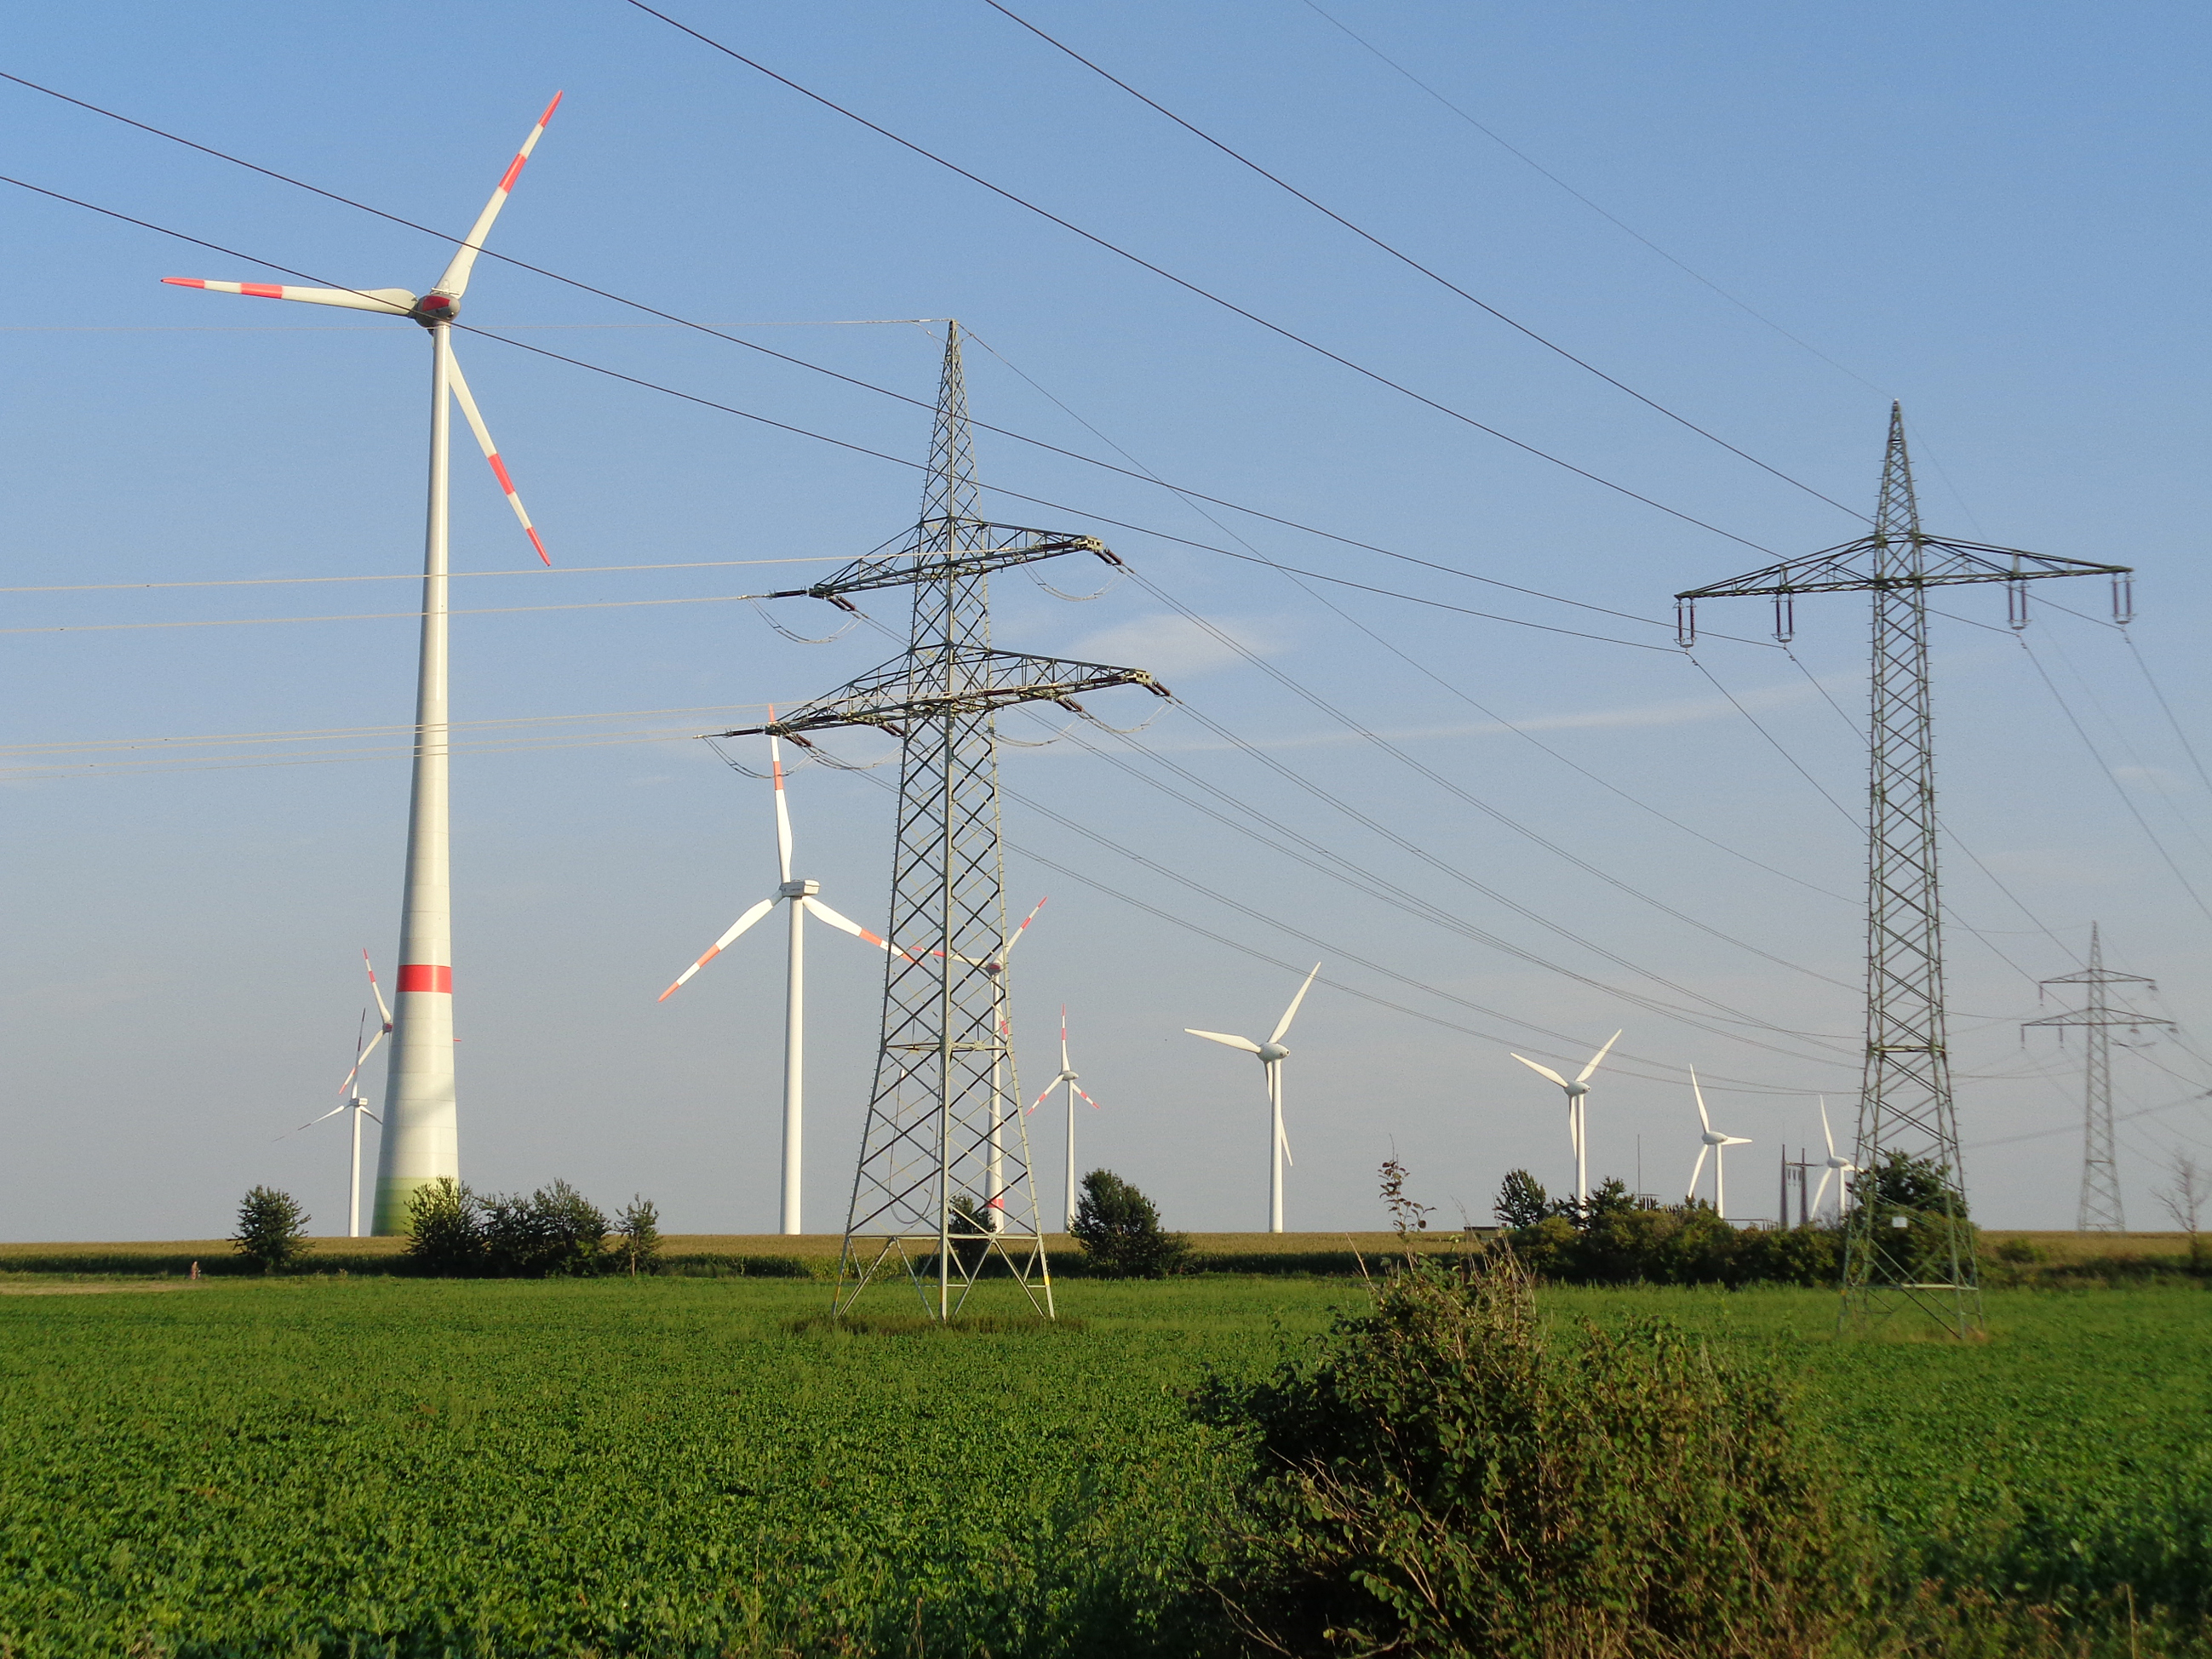 Wind turbines and transmission